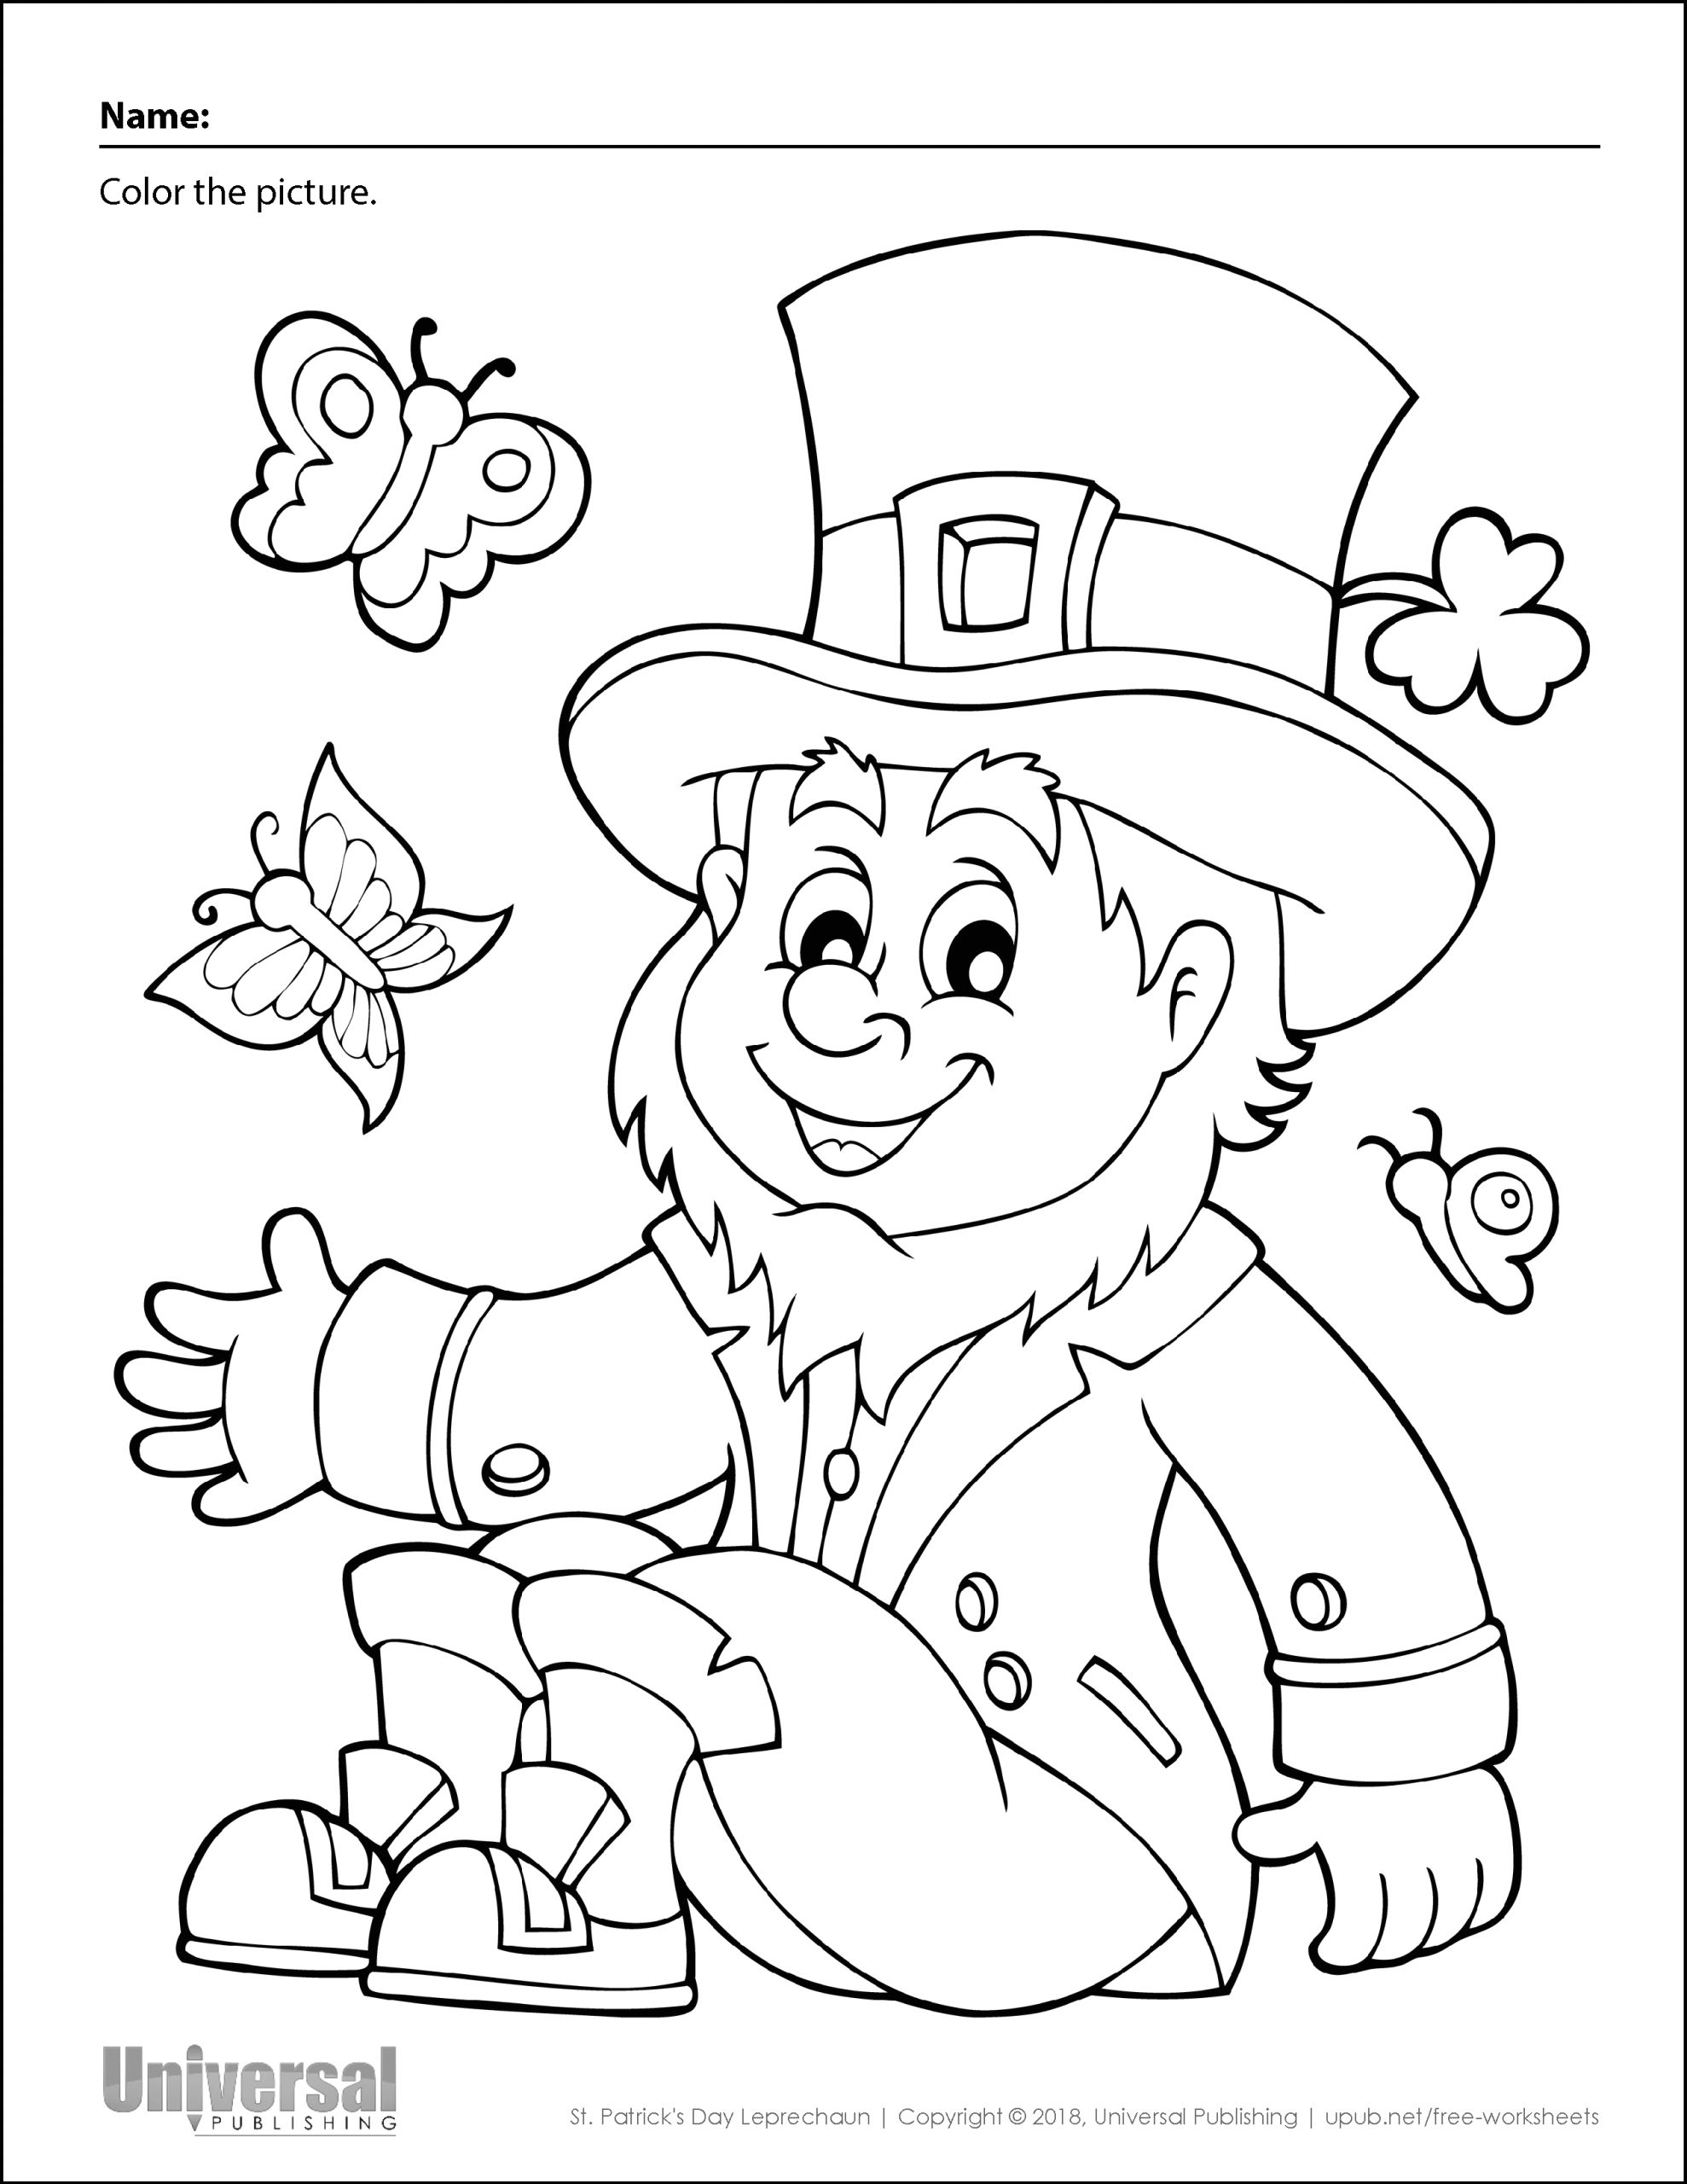 Free Printable Coloring Pages St Patricks Day St Patrick S Day